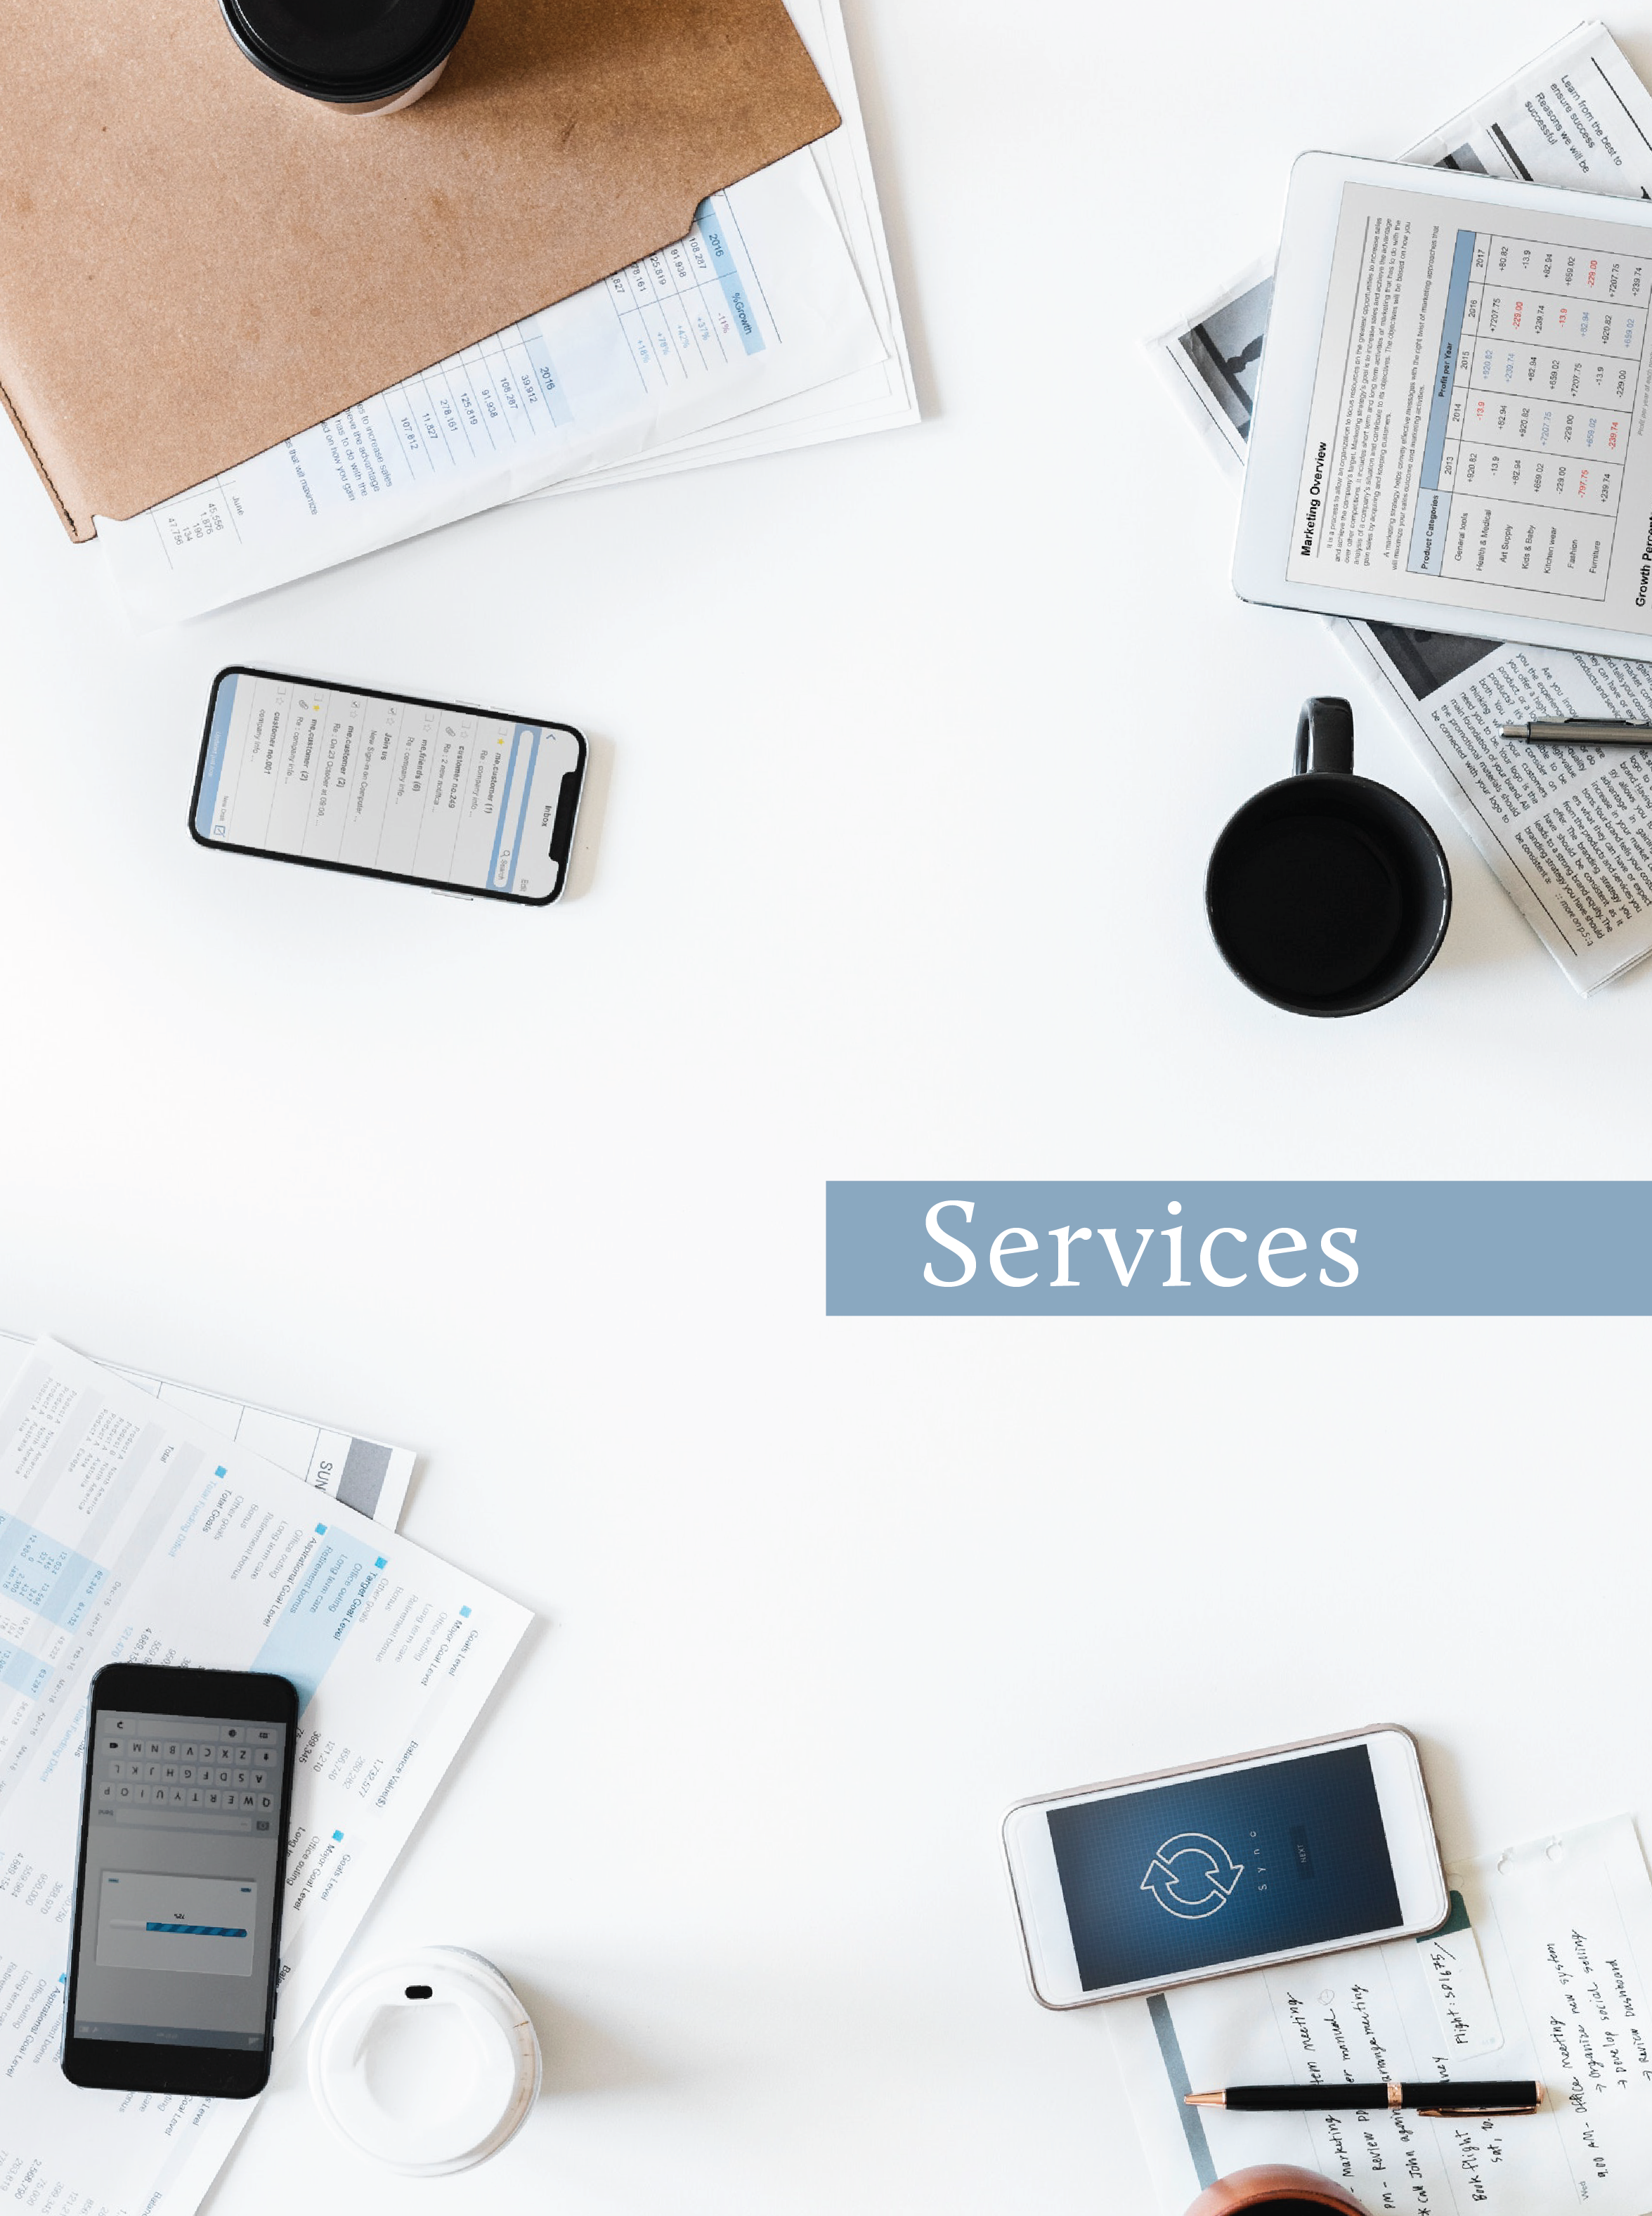 Services Image-01.png